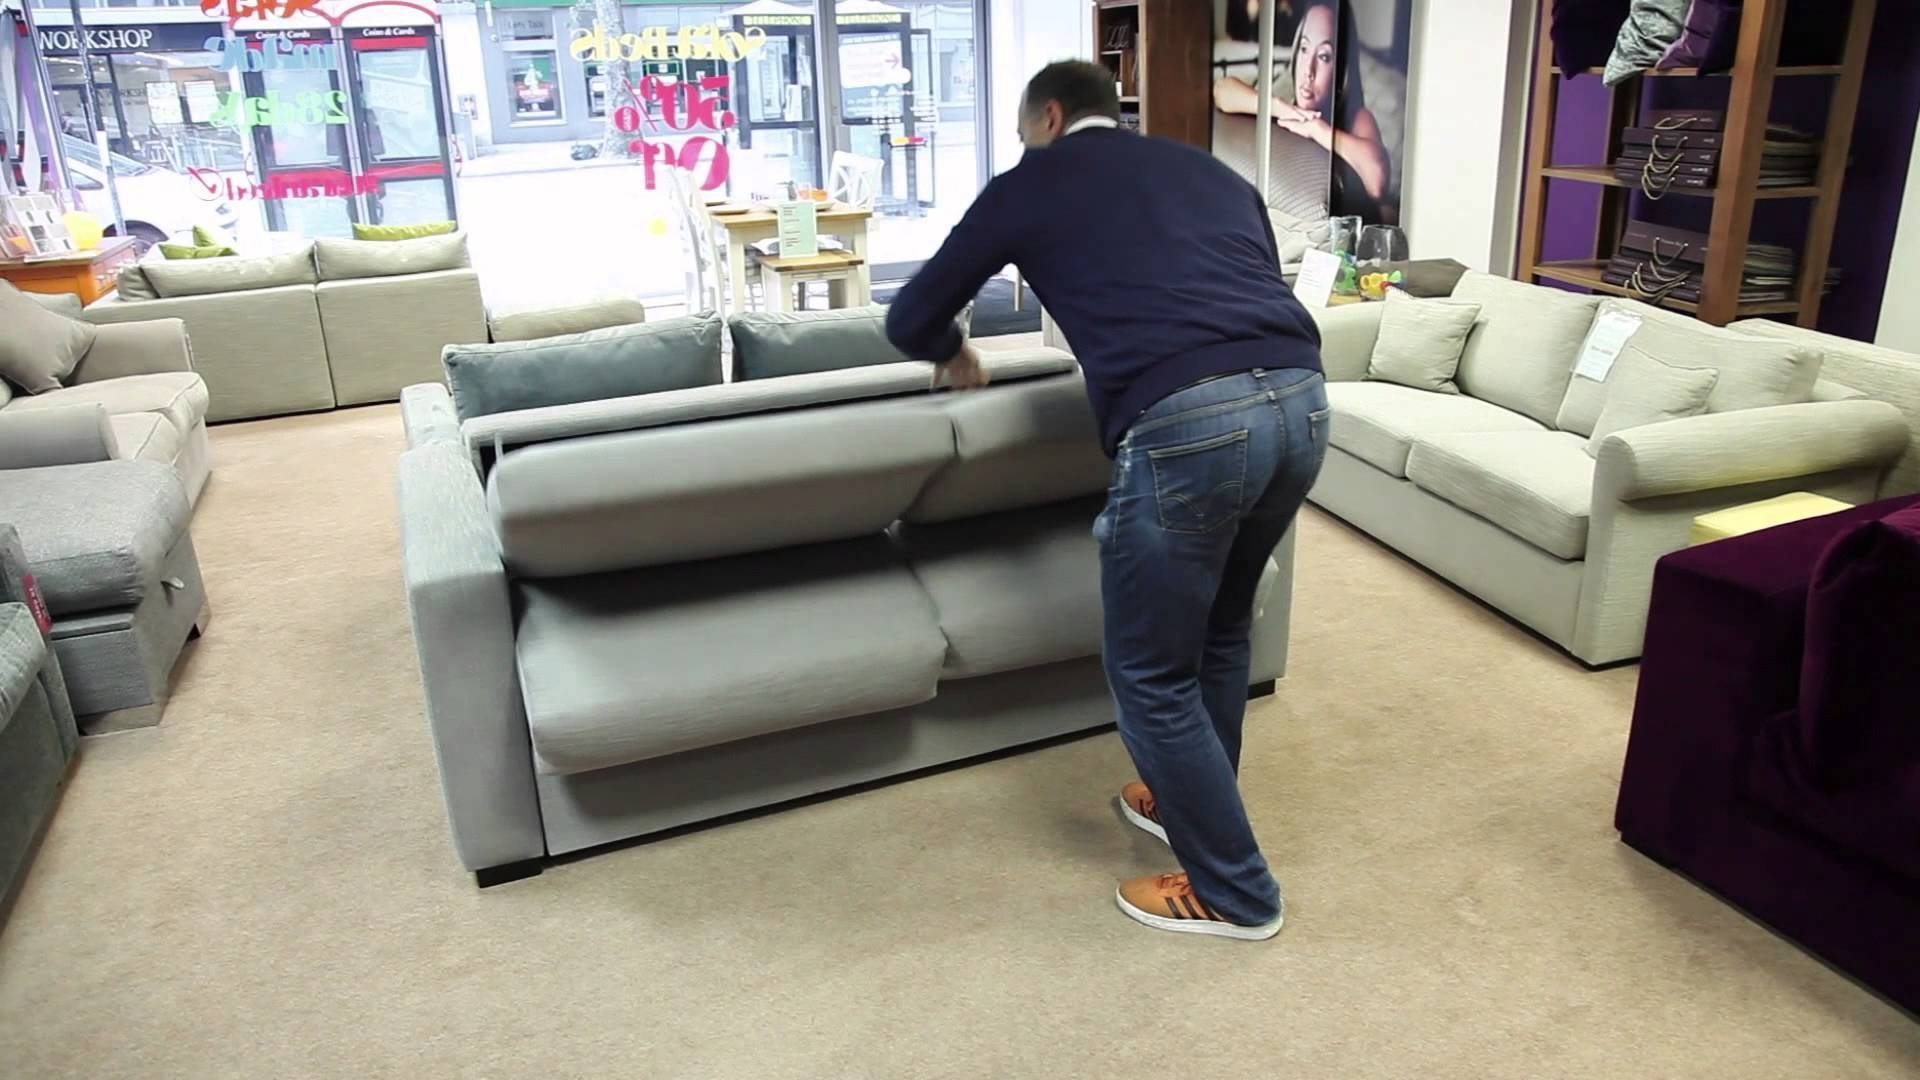 The Best Sofa Bed In The World - Youtube for Most Comfortable Sofabed (Image 28 of 30)